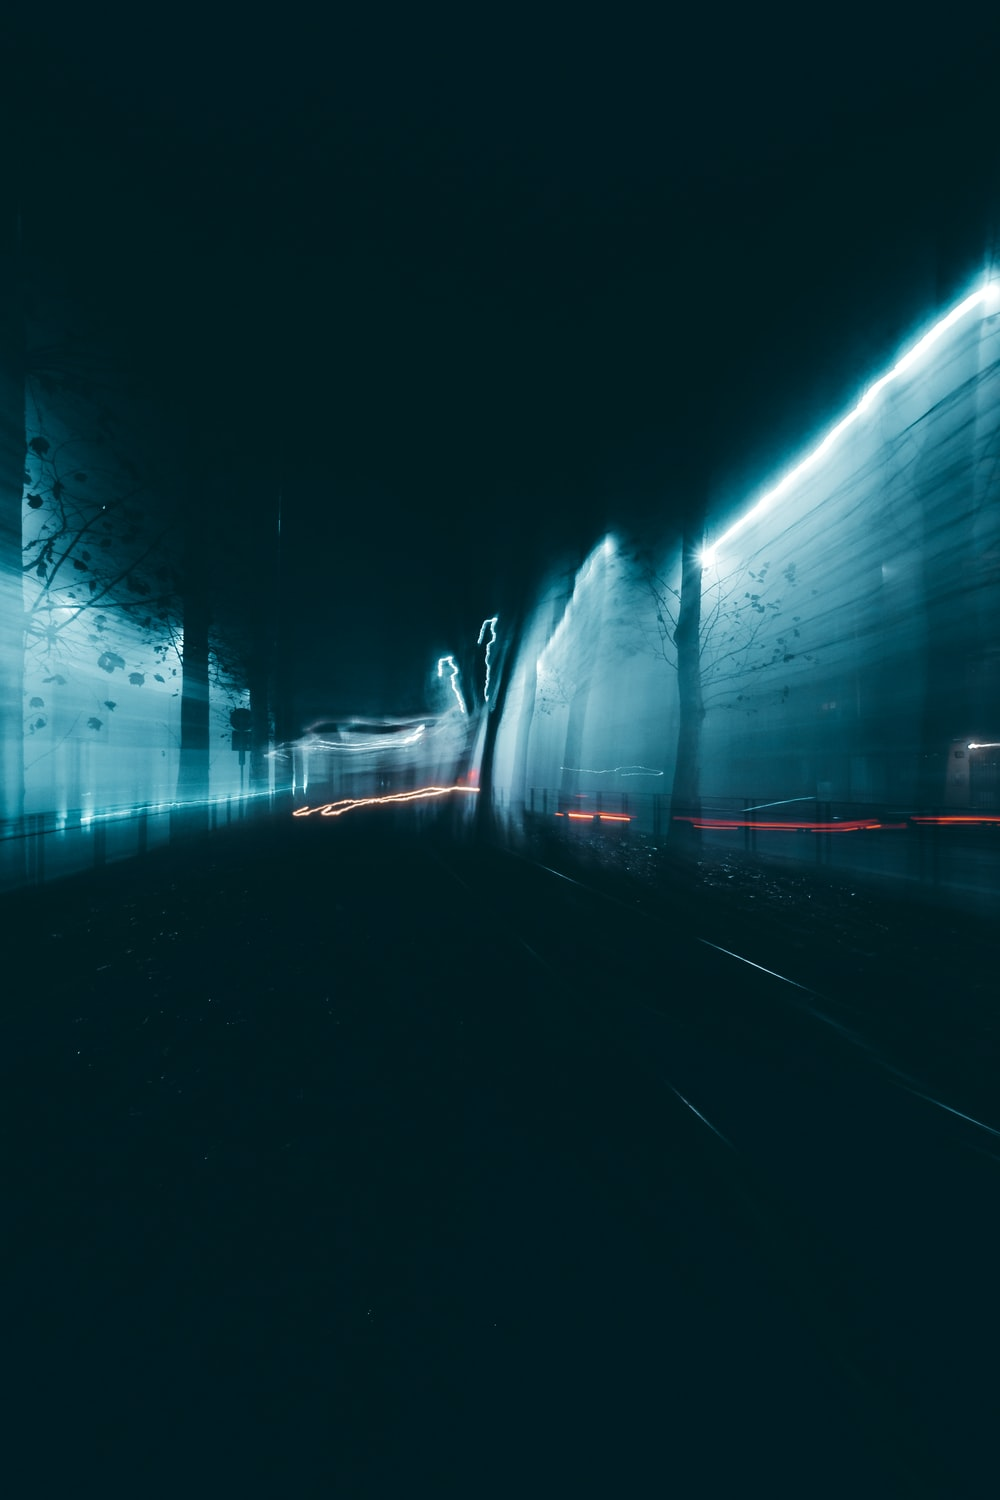 blue light in tunnel during daytime